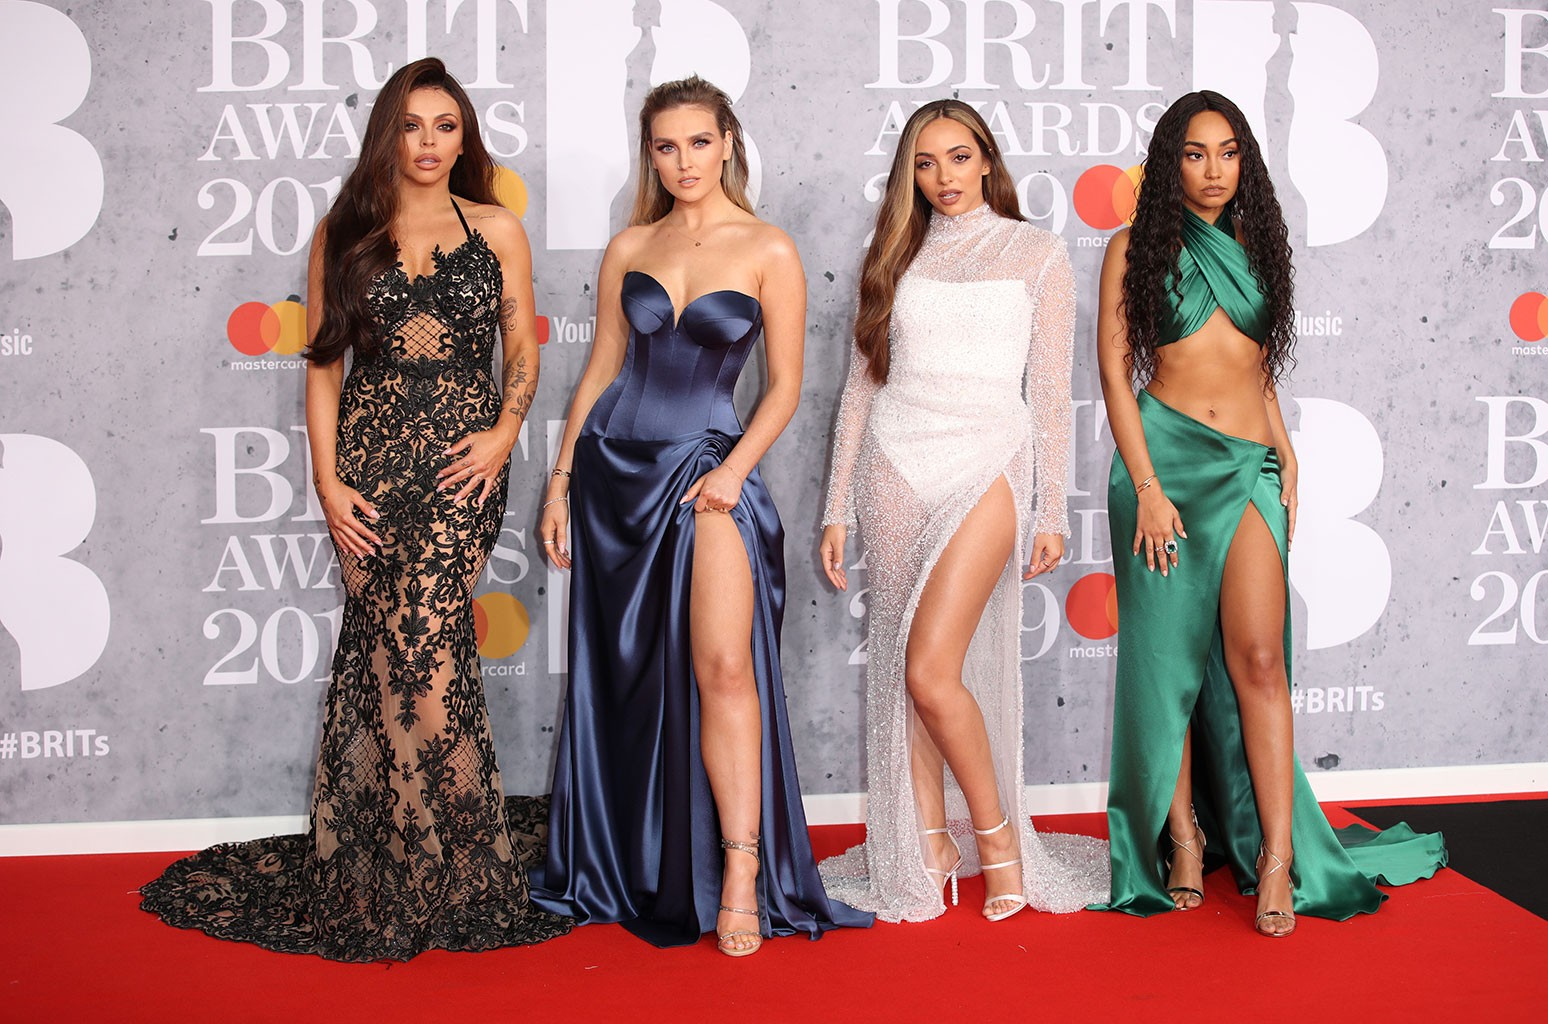 Little Mix attends The BRIT Awards 2019 held at The O2 Arena on Feb. 20, 2019 in London.